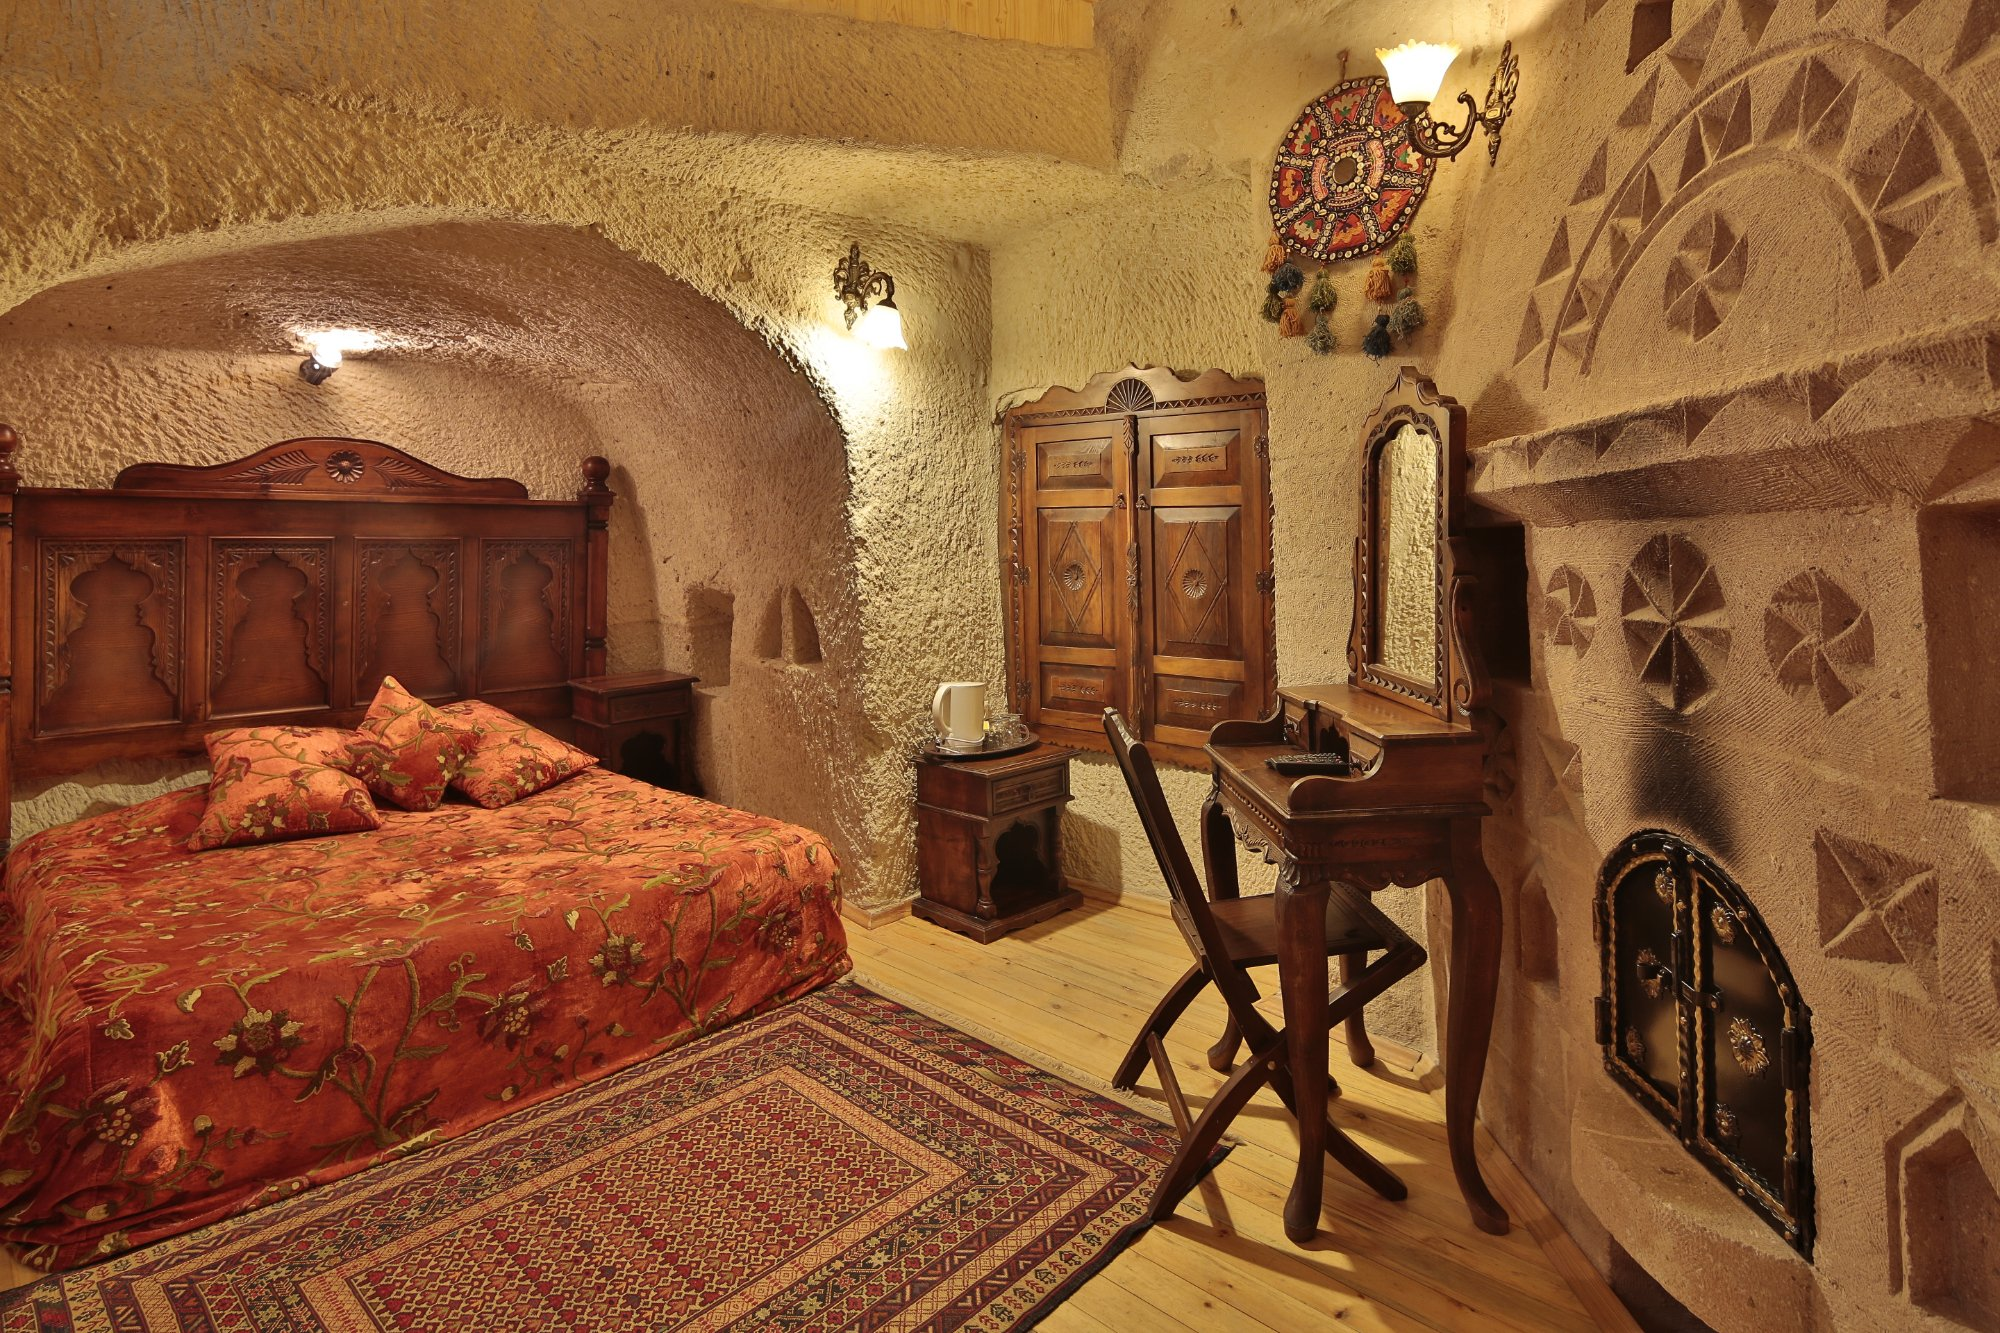 Travel Inn Cave Hotel